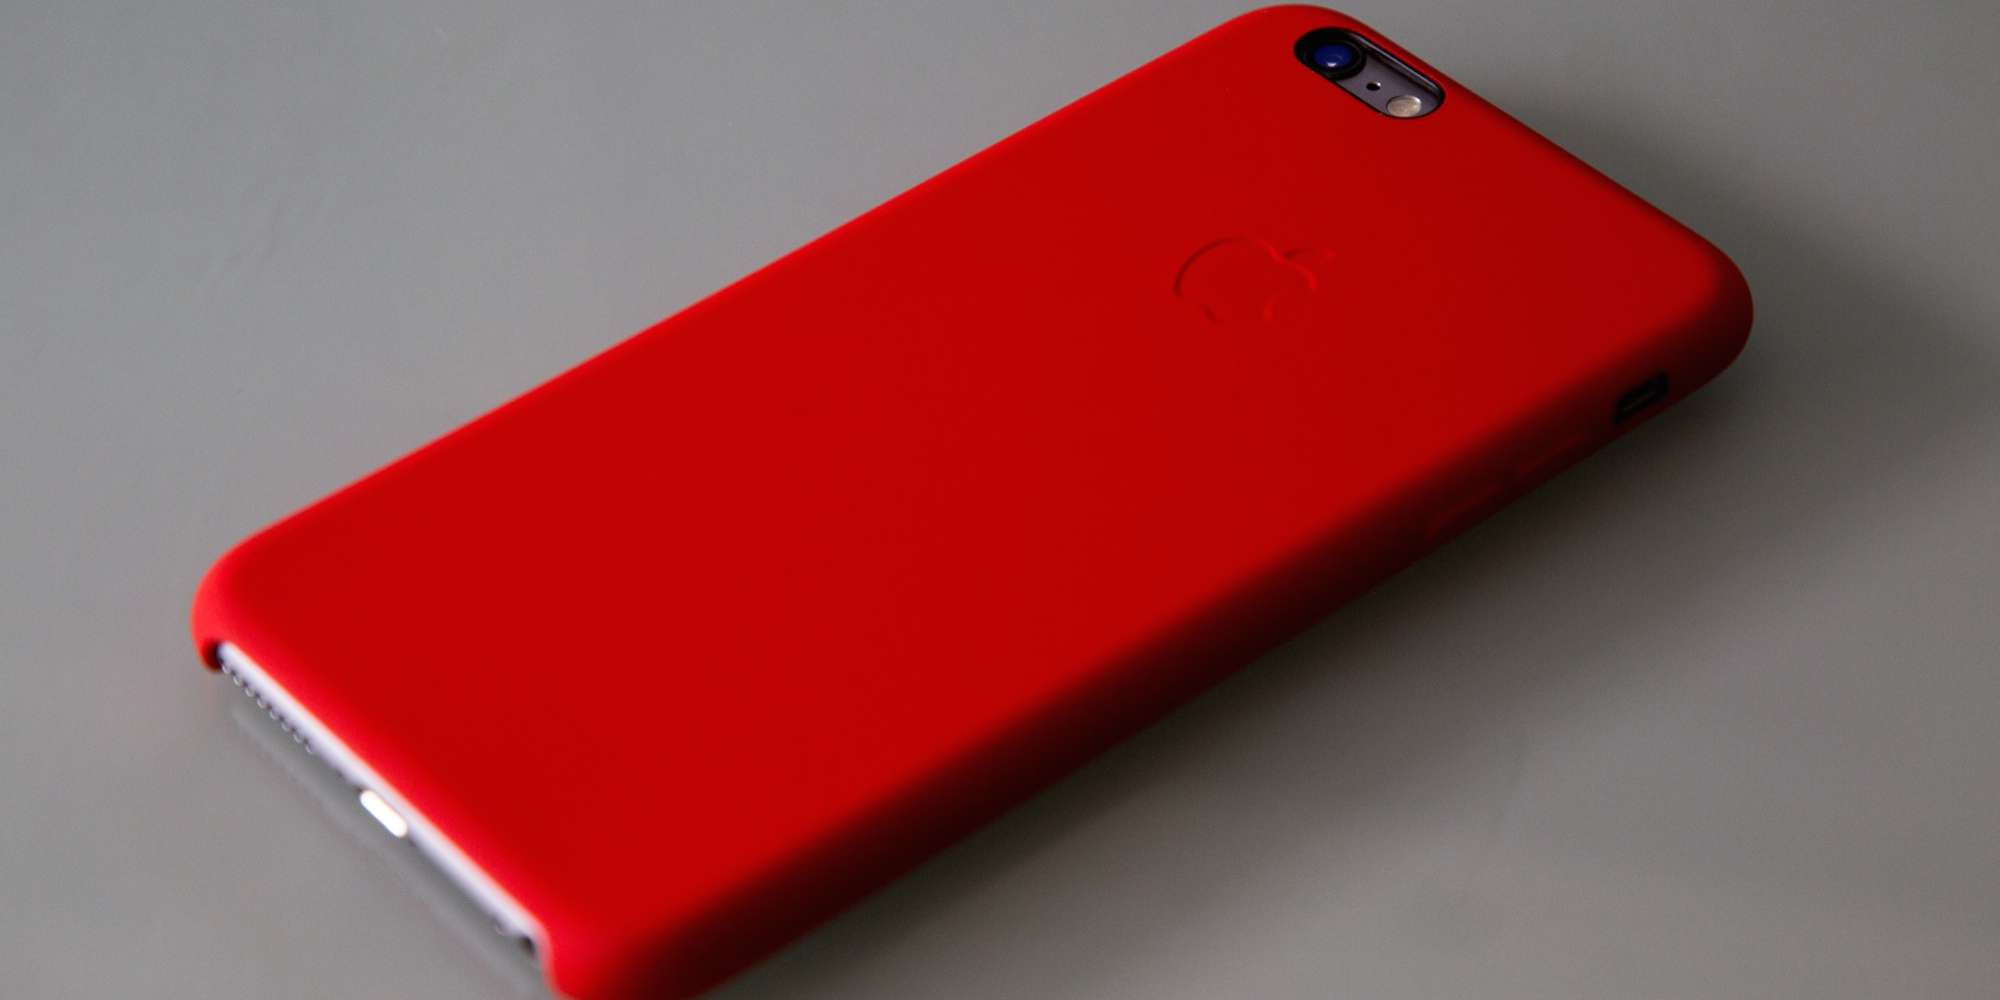 Apple funda oficial iPhone 6 Silicona Product Red Roja